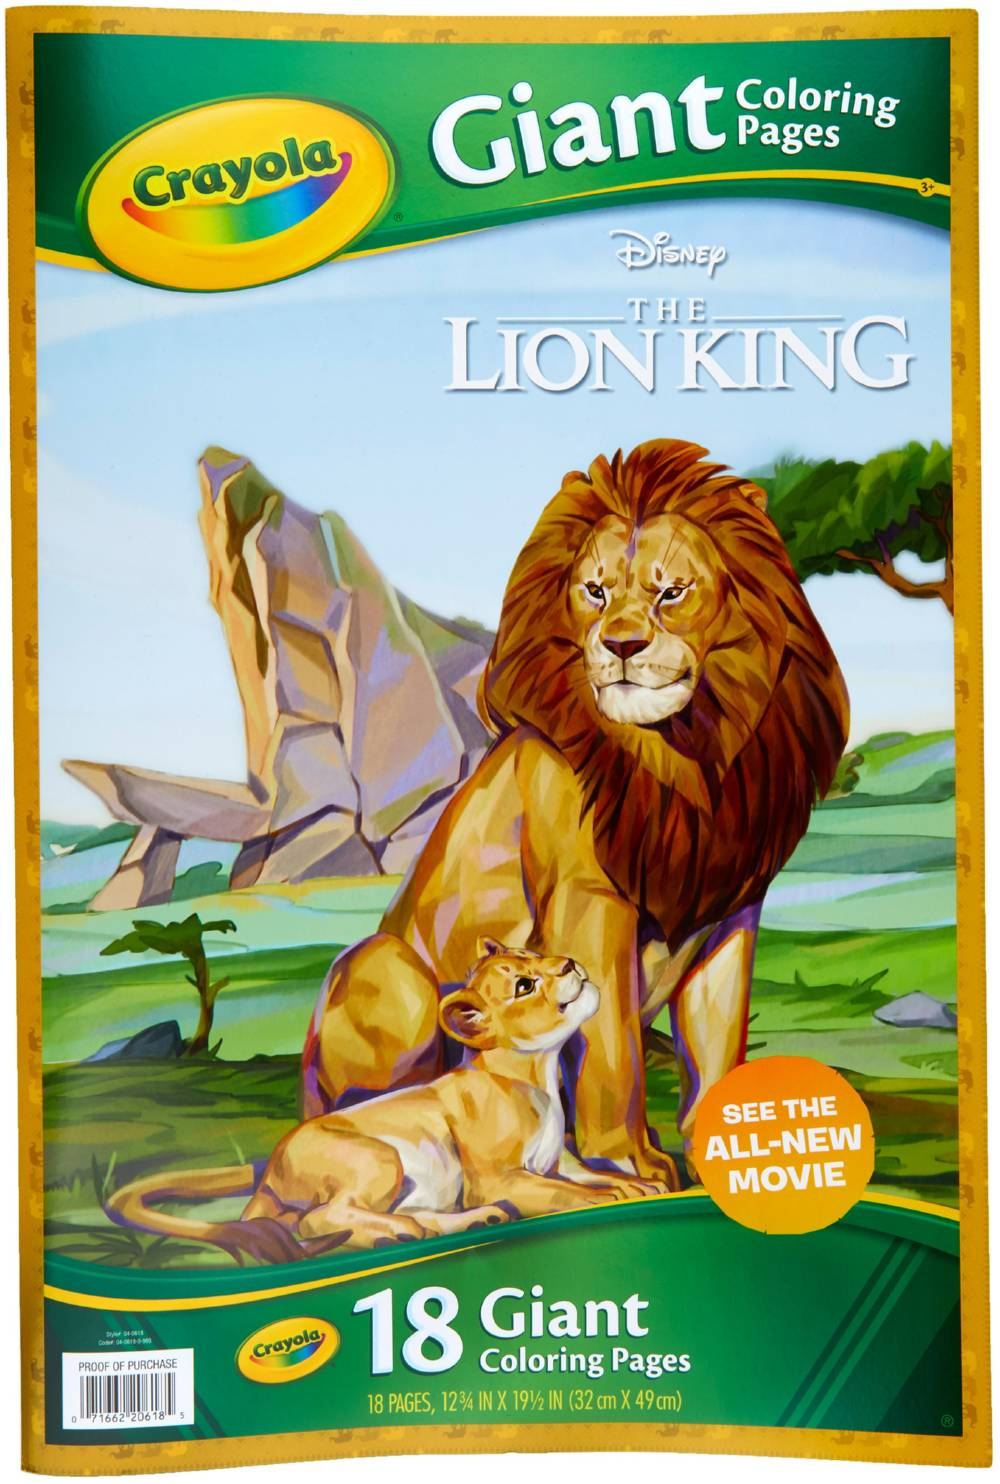 Crayola Giant Coloring Pages Featuring The Lion King Walmart Com Walmart Com